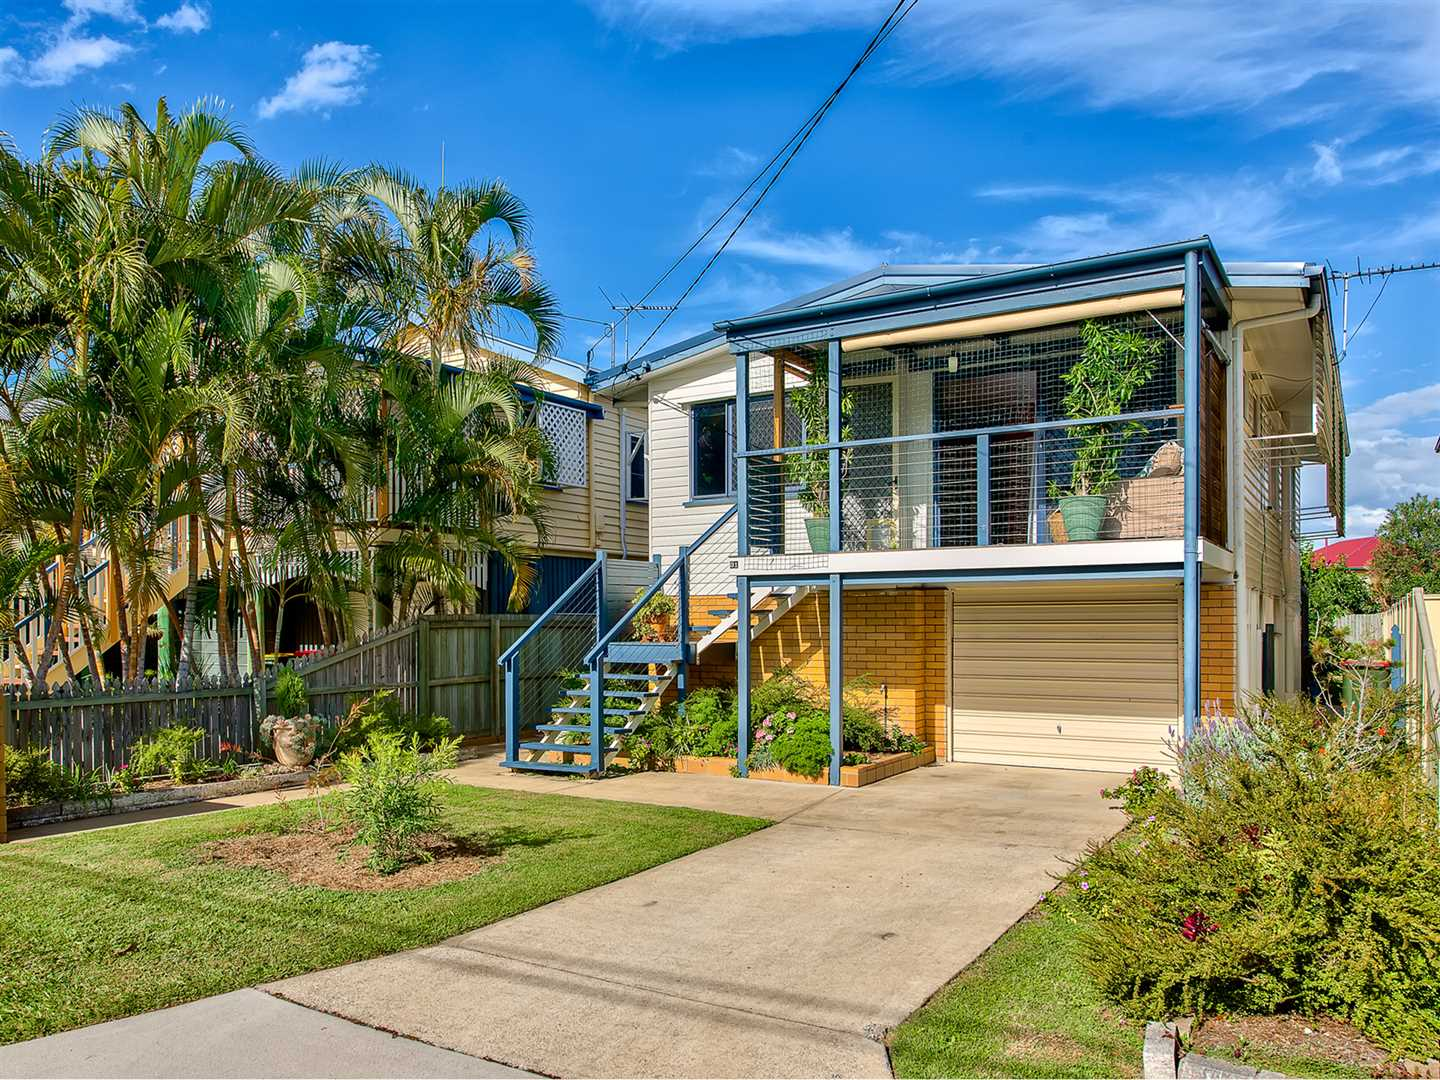 Charming two level home - great value, great position